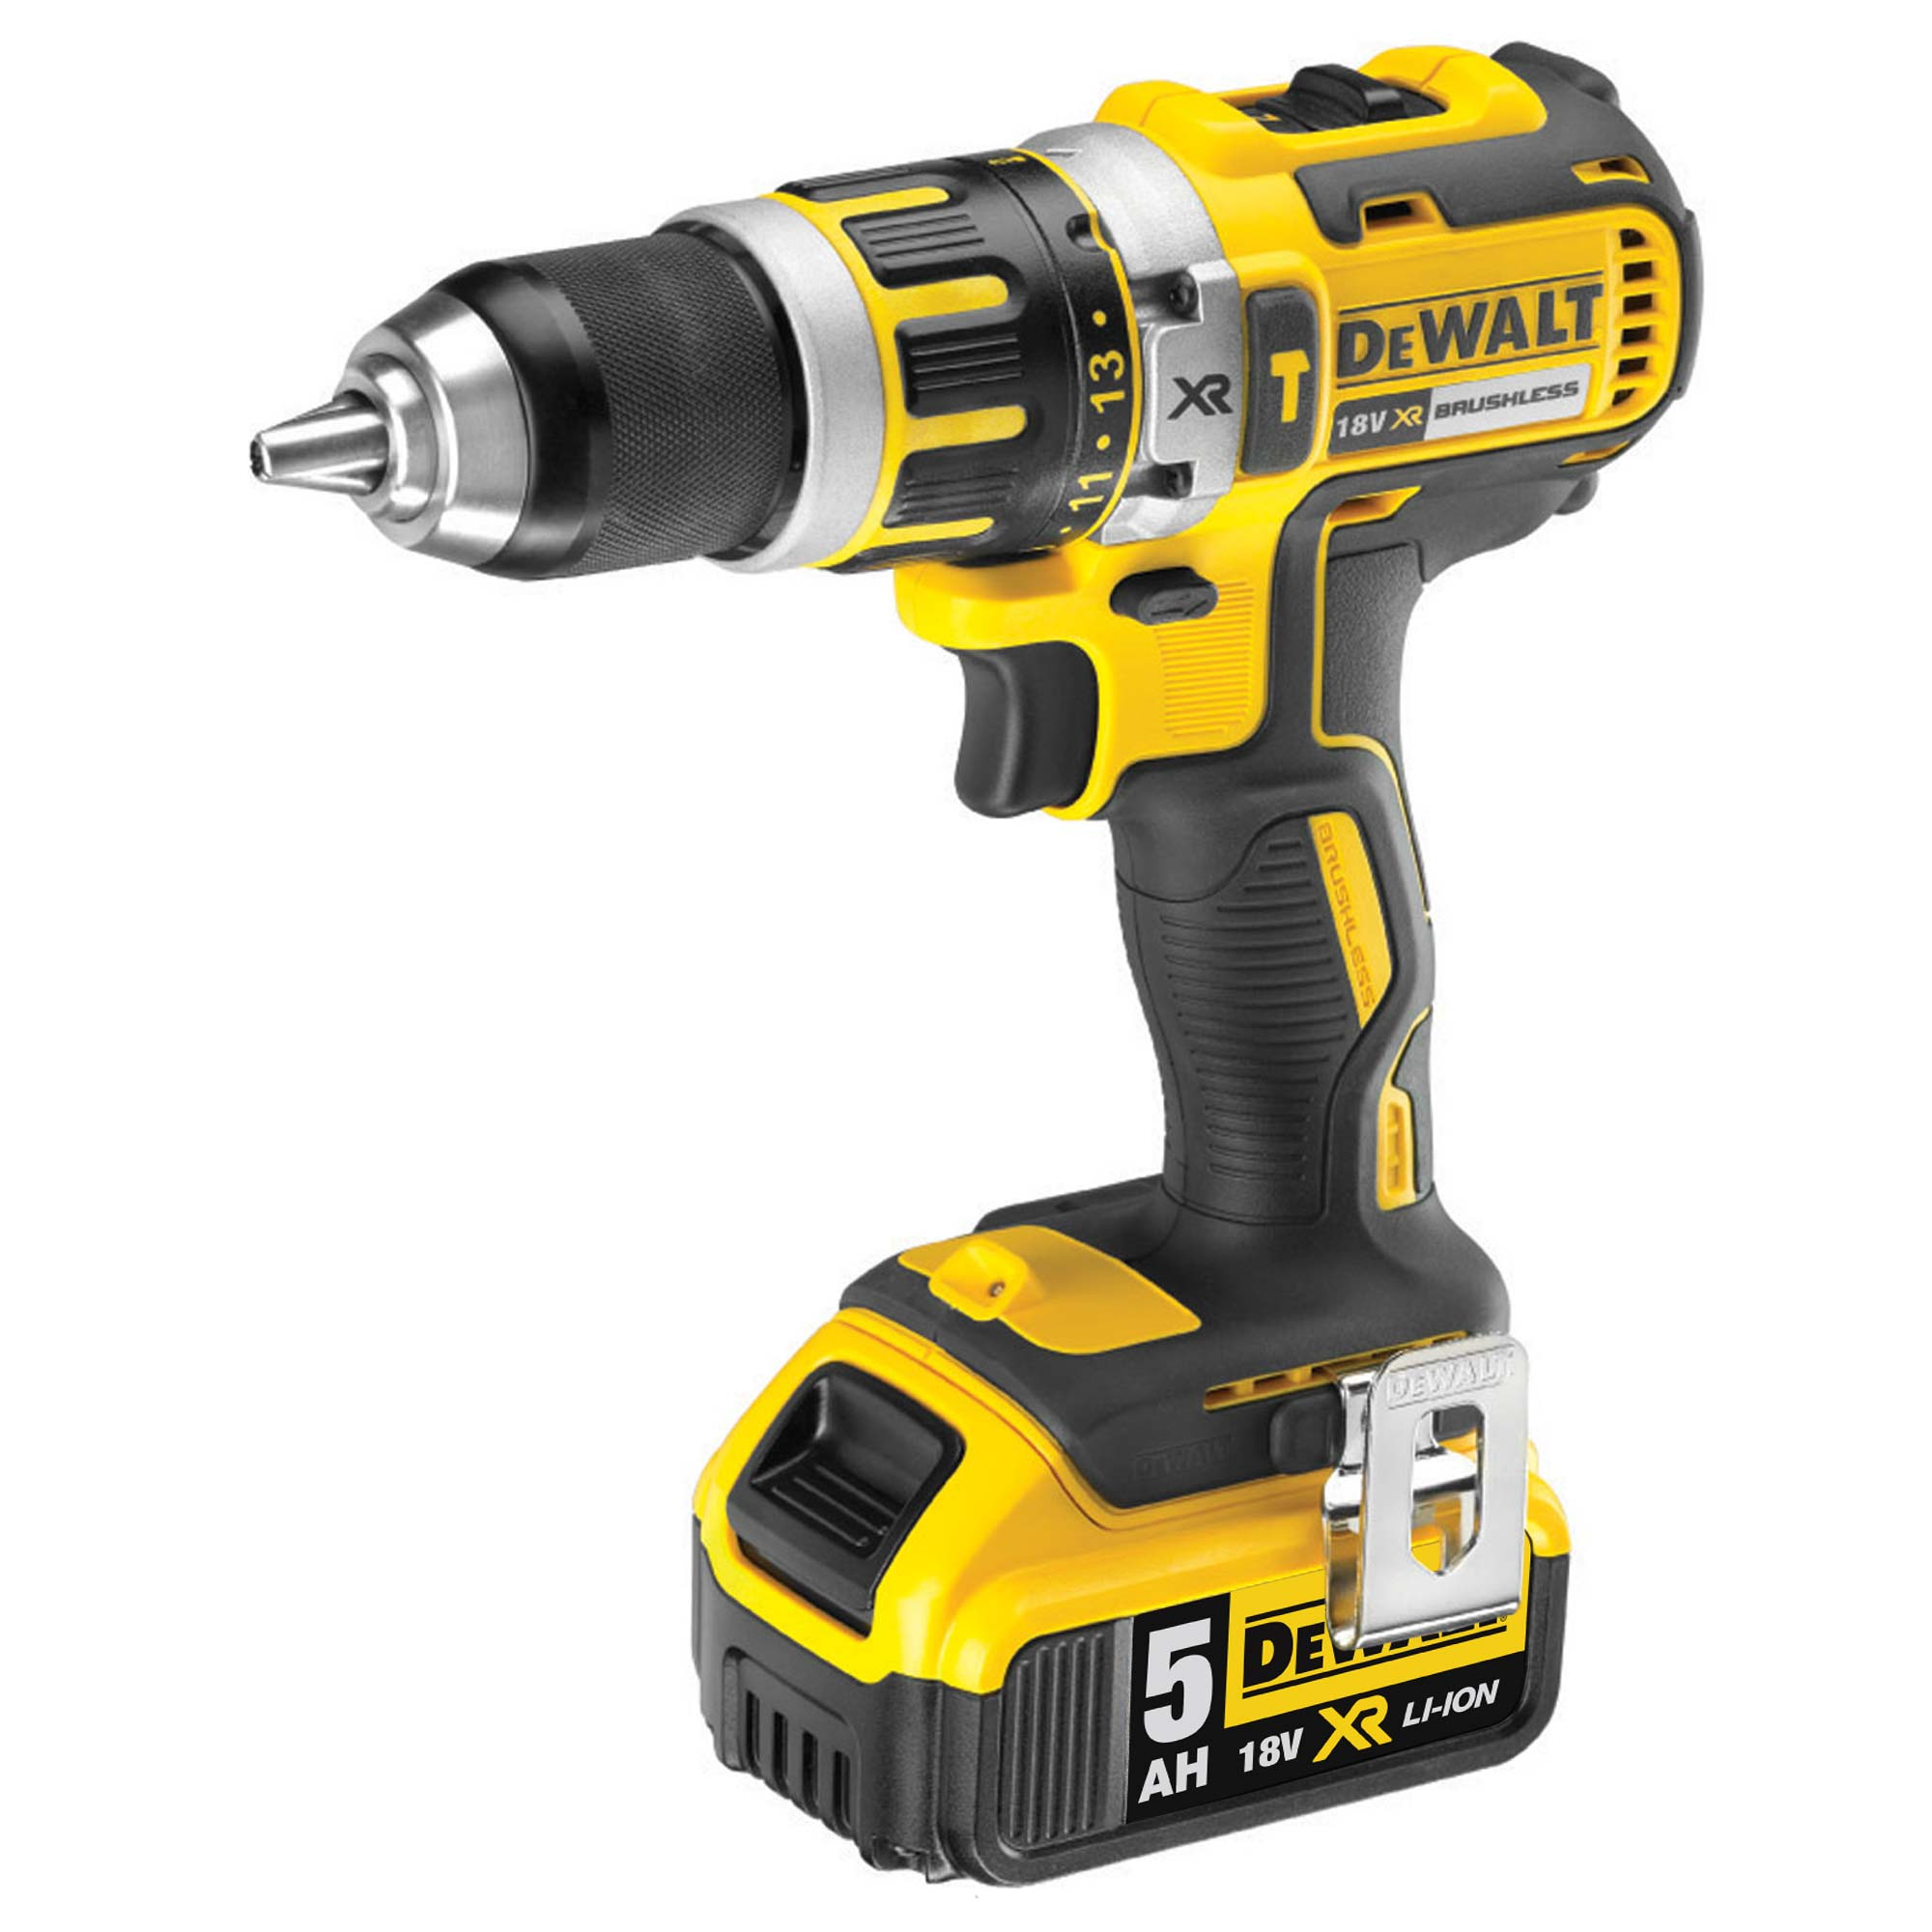 dewalt dcd795p1 dewalt 18v xr li ionbrushless hammer drill driver. Black Bedroom Furniture Sets. Home Design Ideas